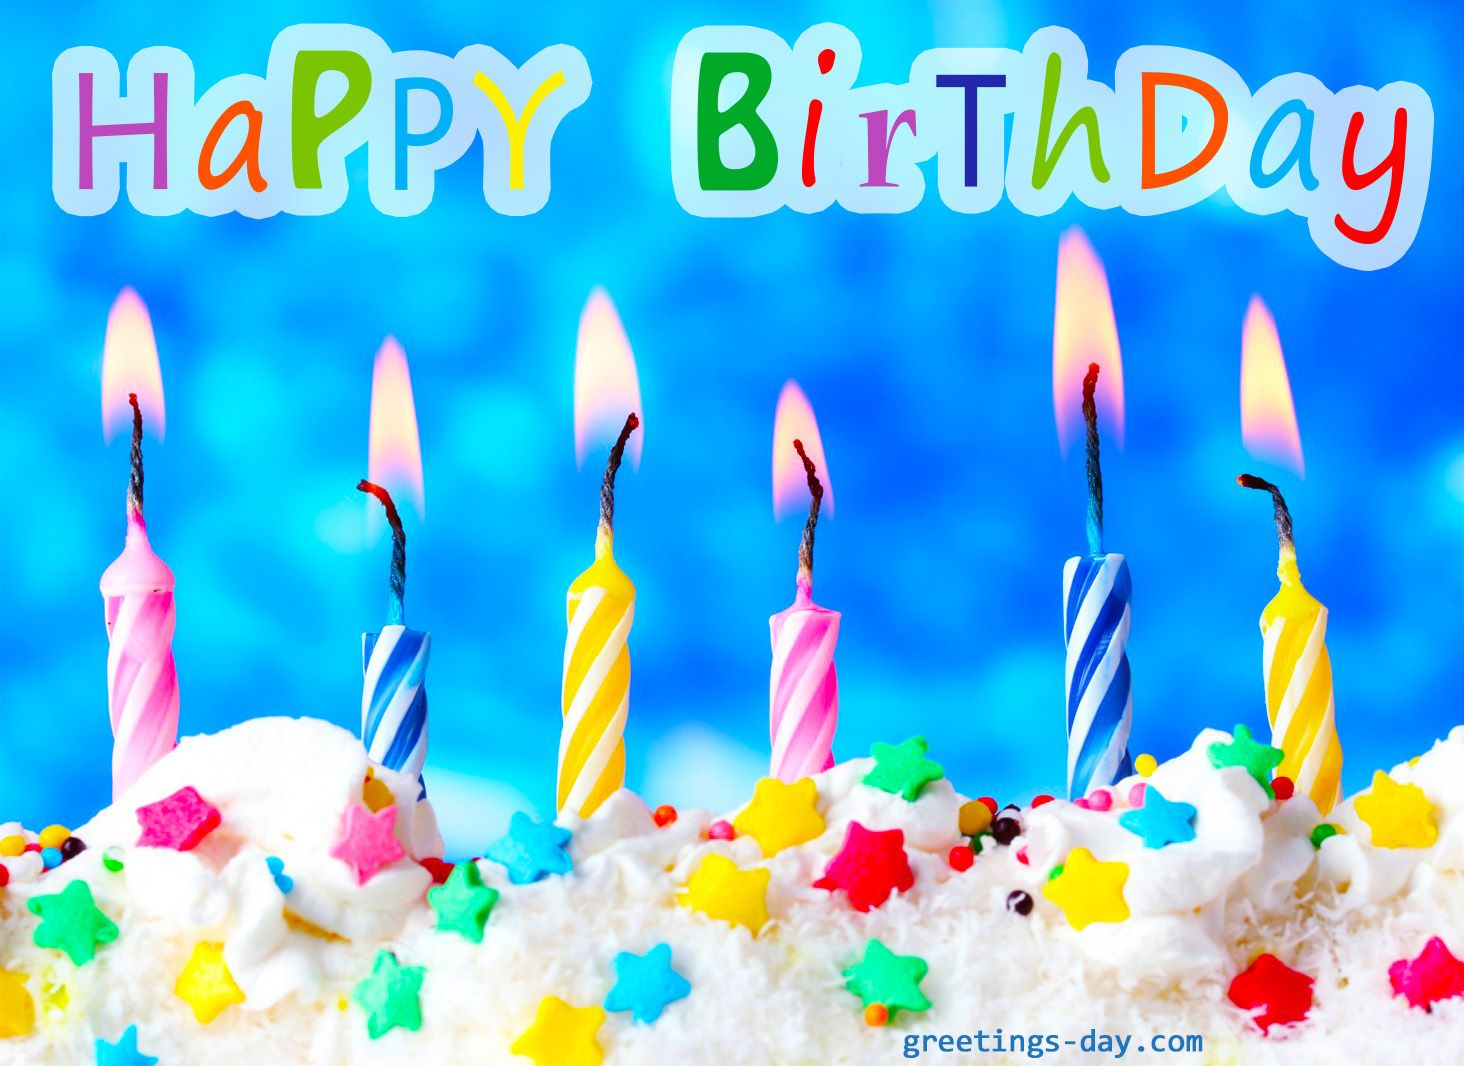 Happy Birthday Best Ecards and Wishes greetingsday – E Birthday Cards Animated